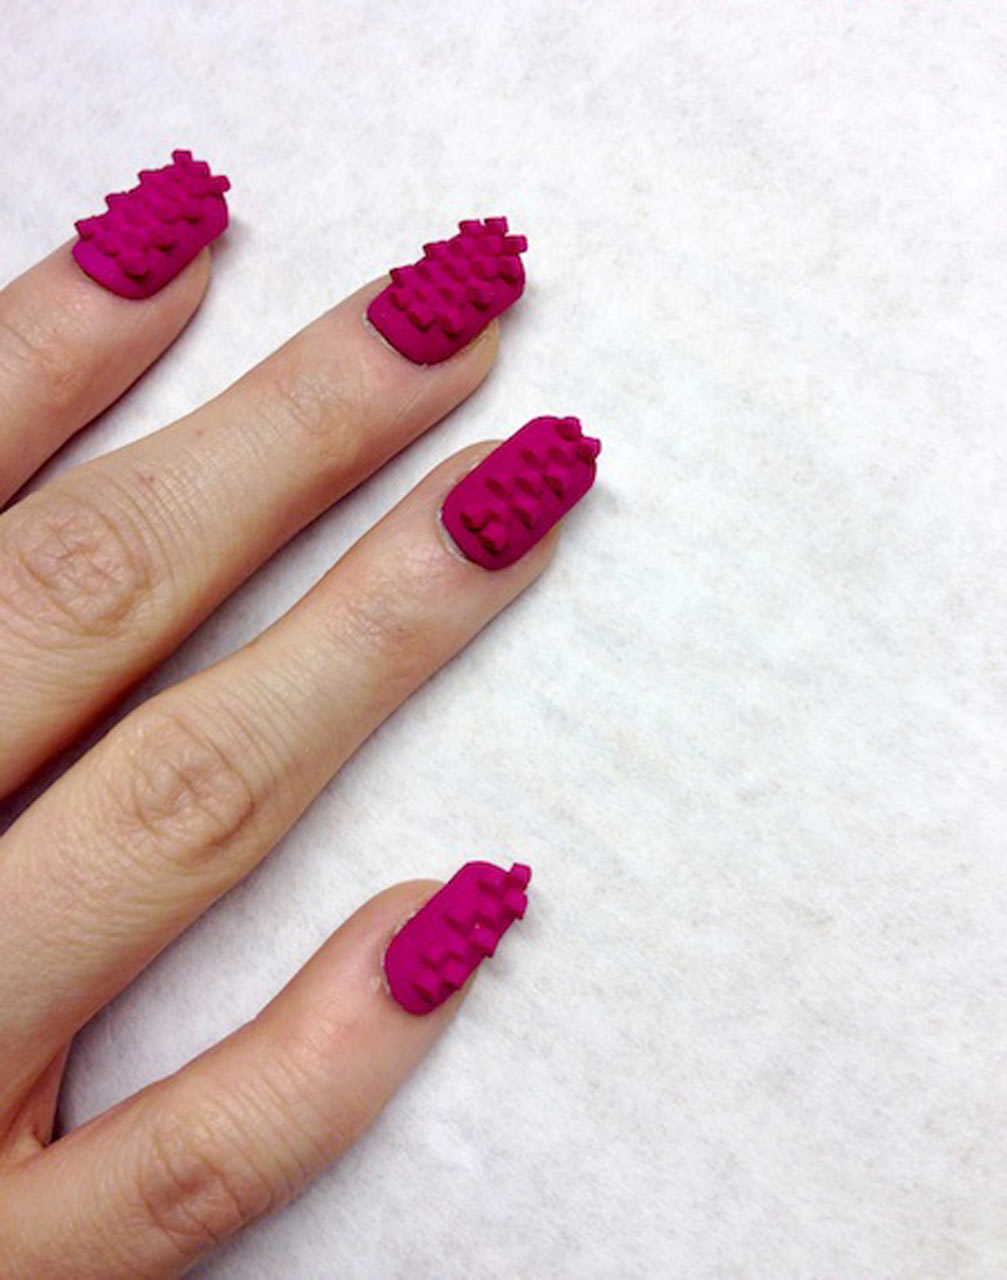 3d-manicure-sarah-awad-dhemerae-ford-03